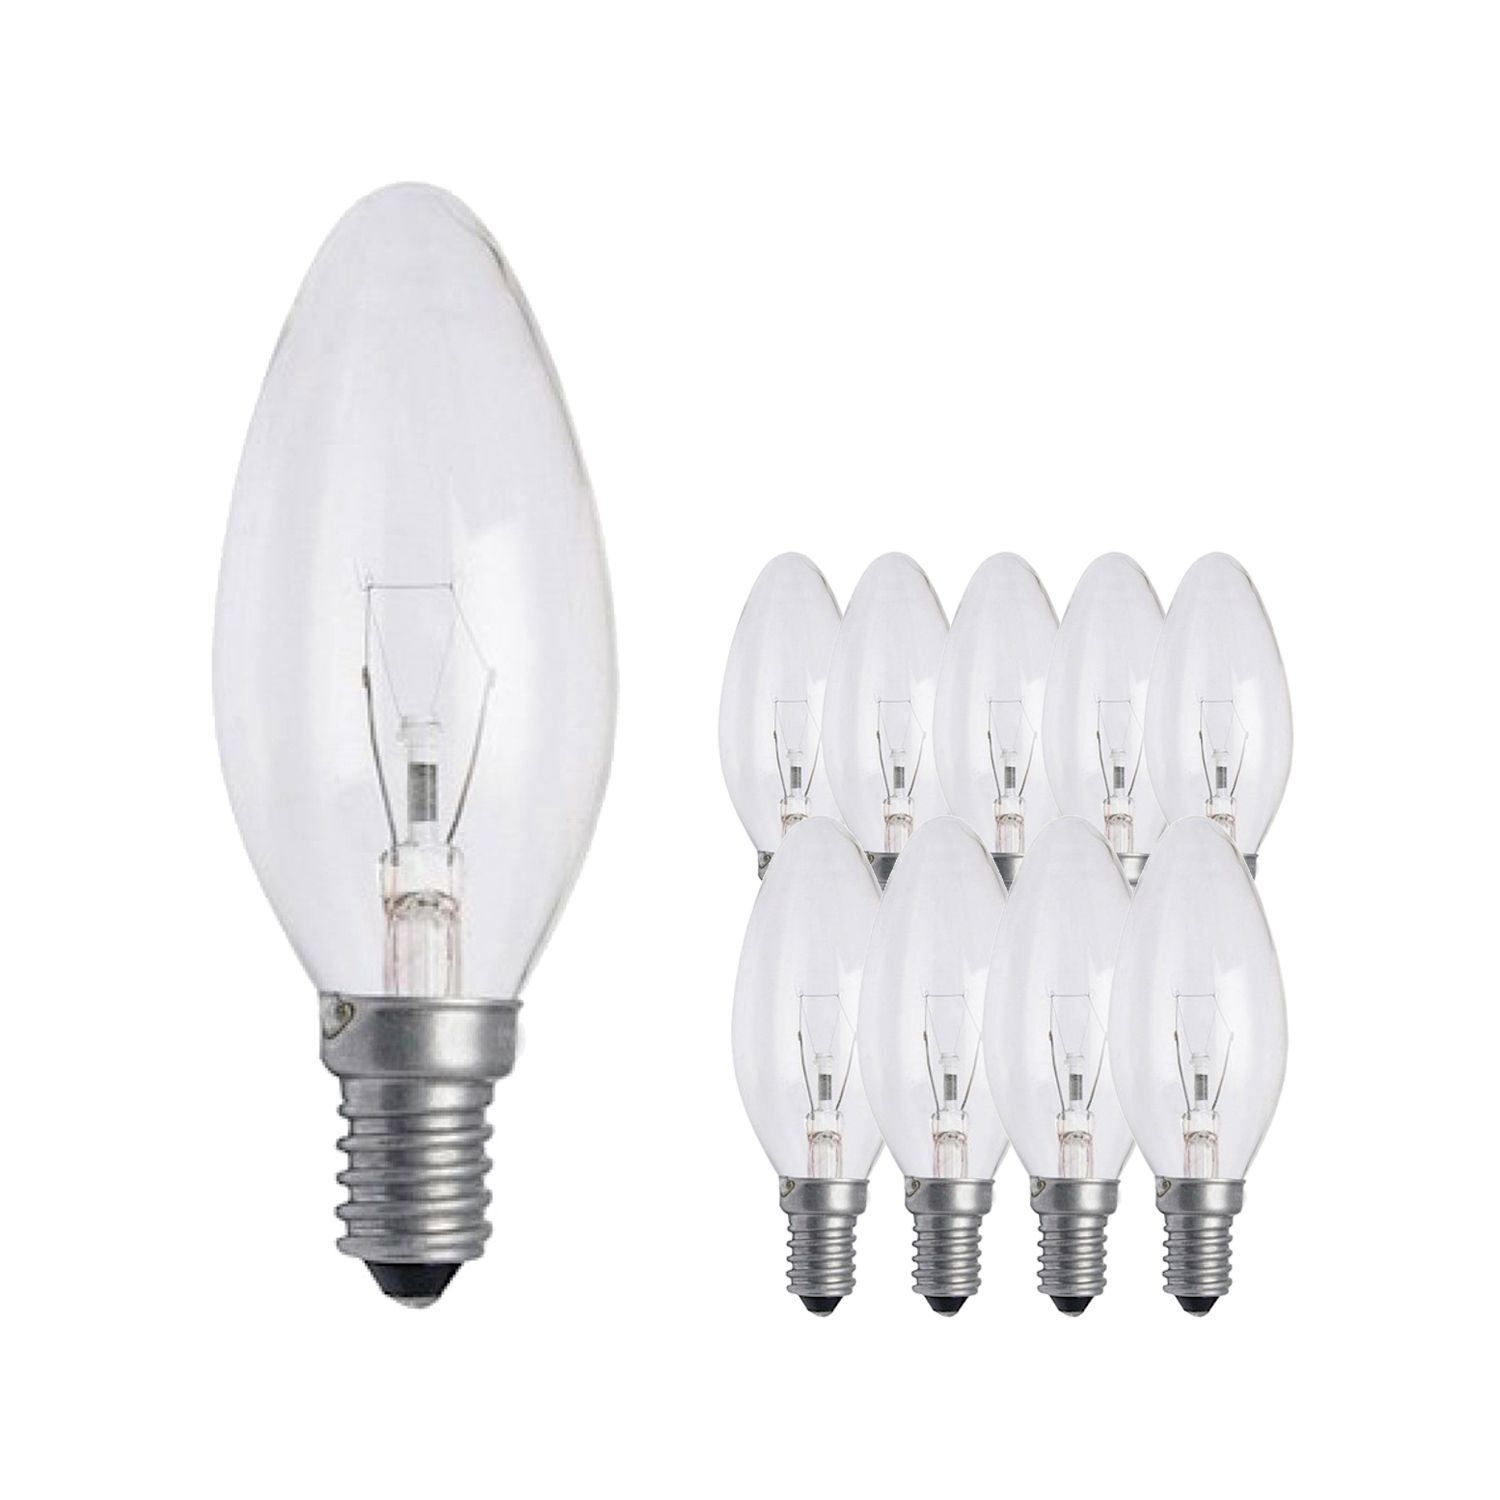 Multipack 10x Standard Incandescent Candle Clear B35 E14 25W 230V